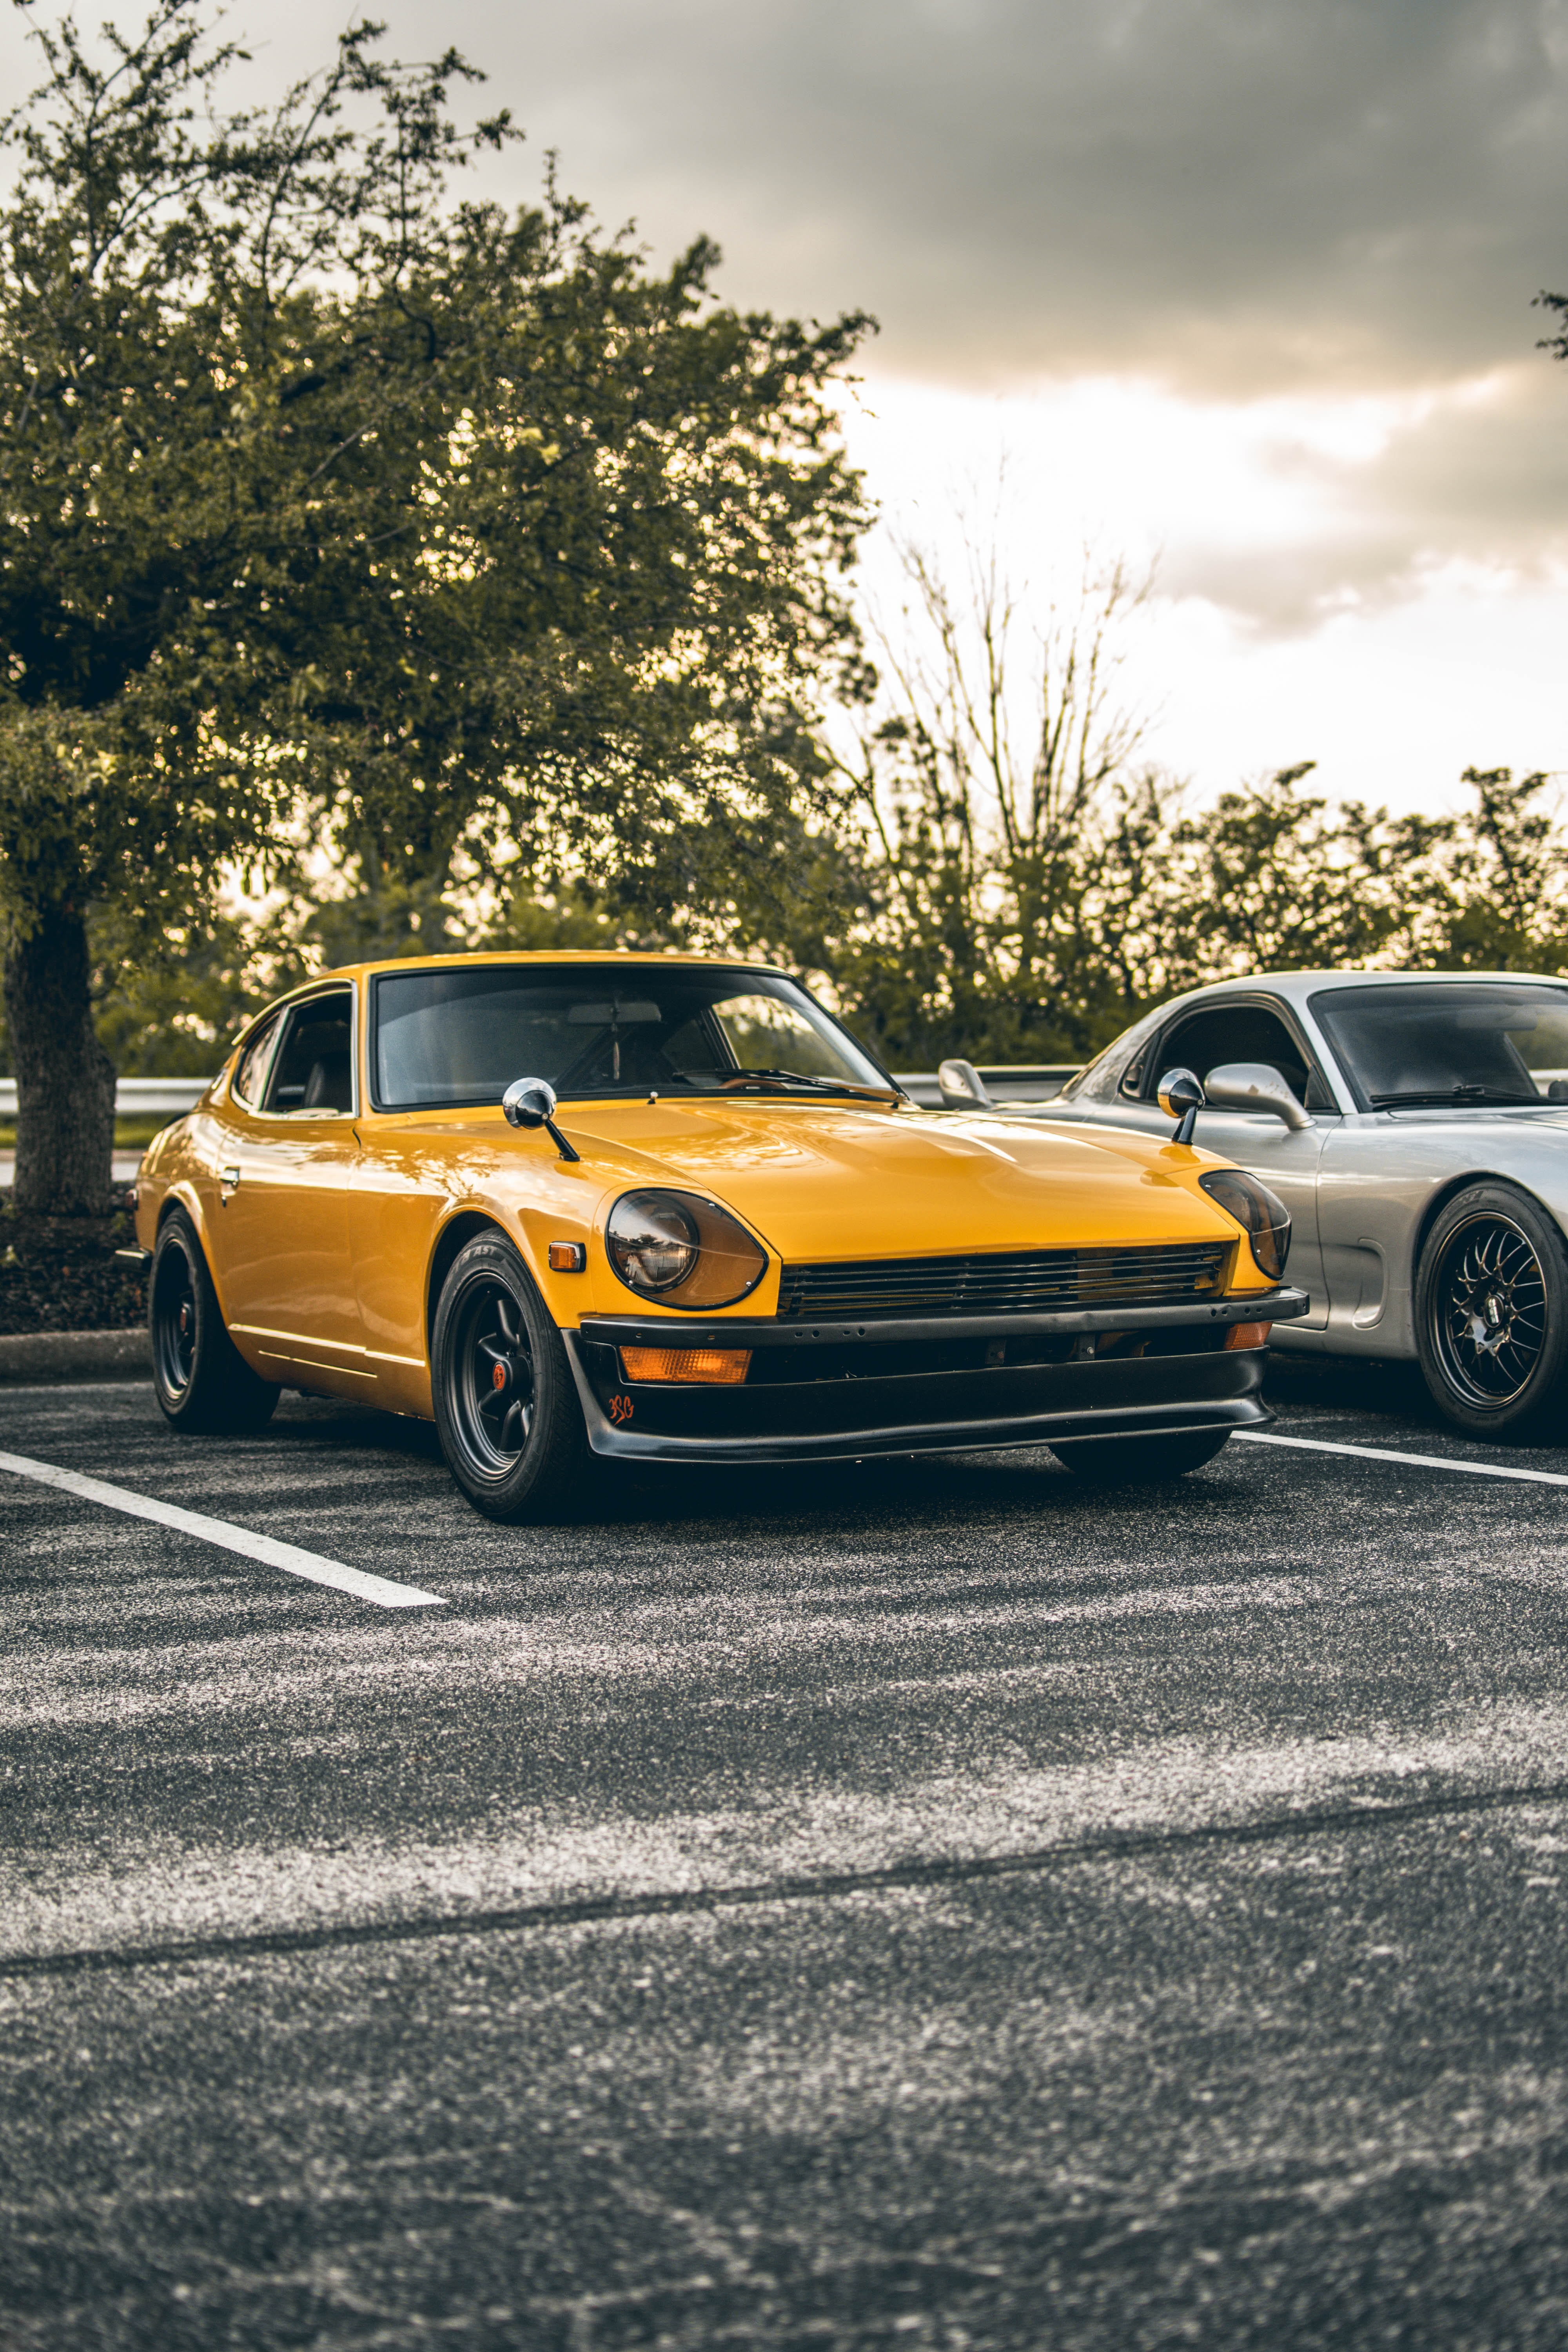 123533 Screensavers and Wallpapers Retro for phone. Download Cars, Car, Retro, Vintage pictures for free